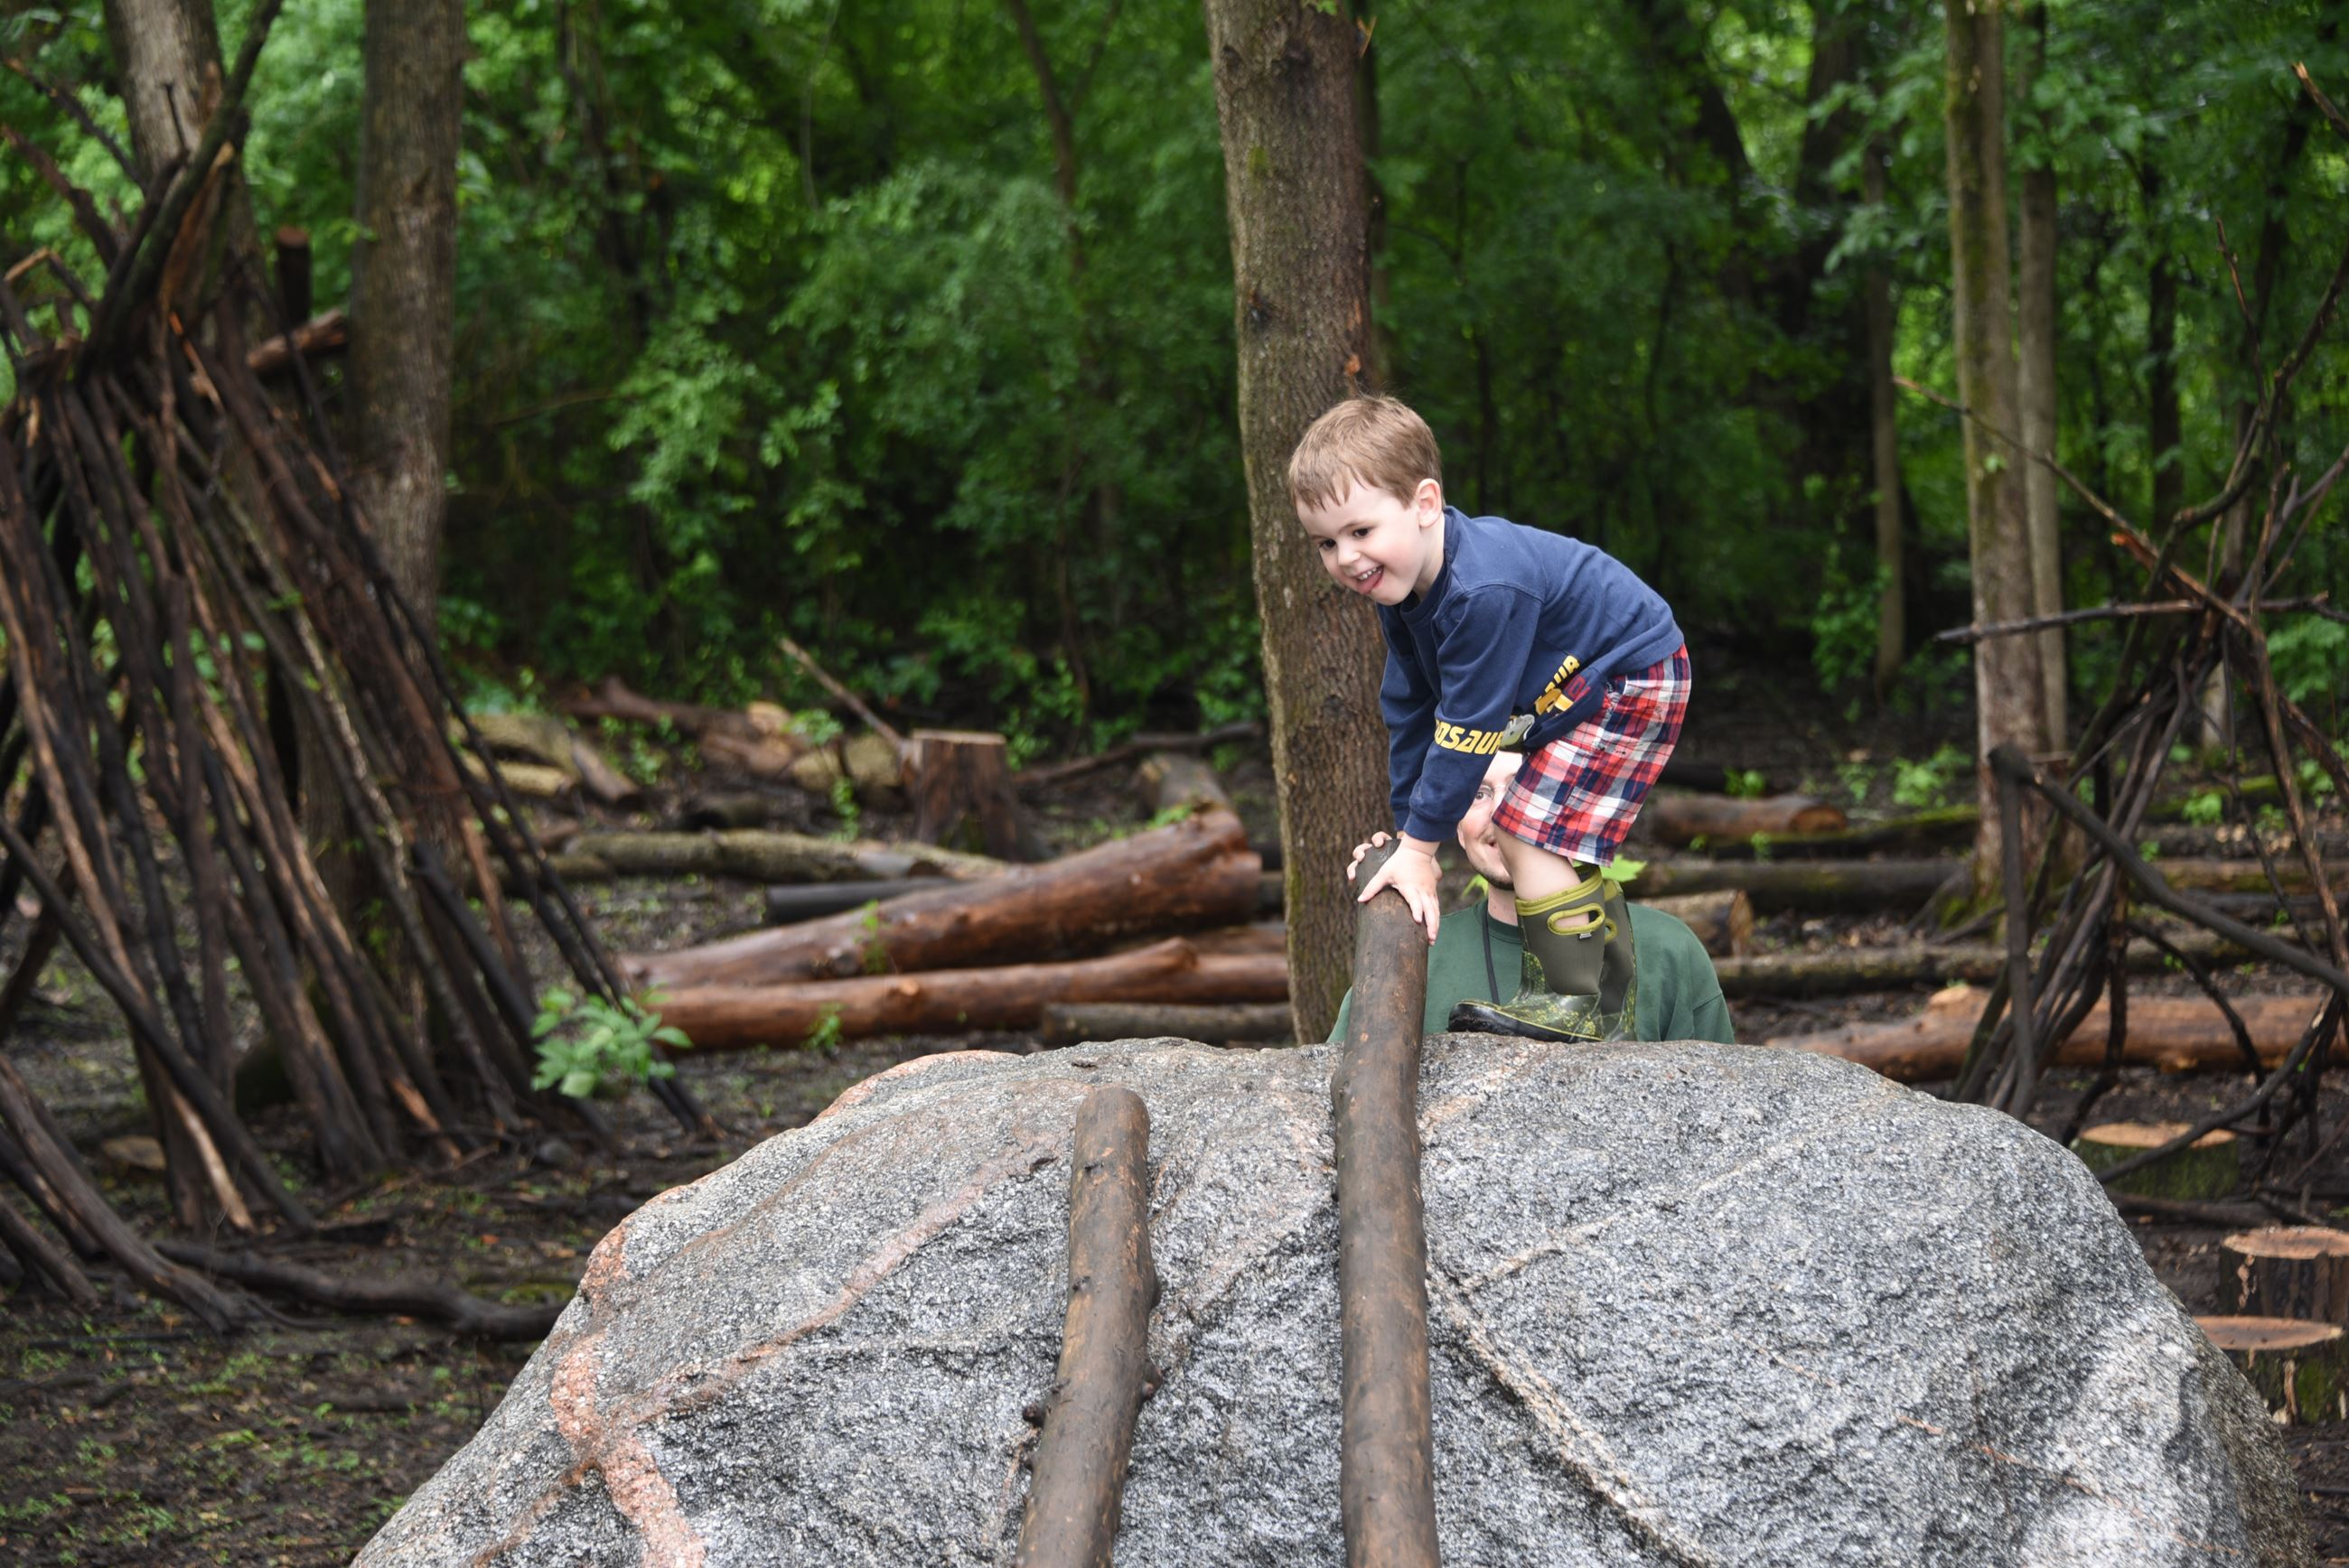 A young boy climbs on a large rock in a nature play area in Terrace Oaks Park